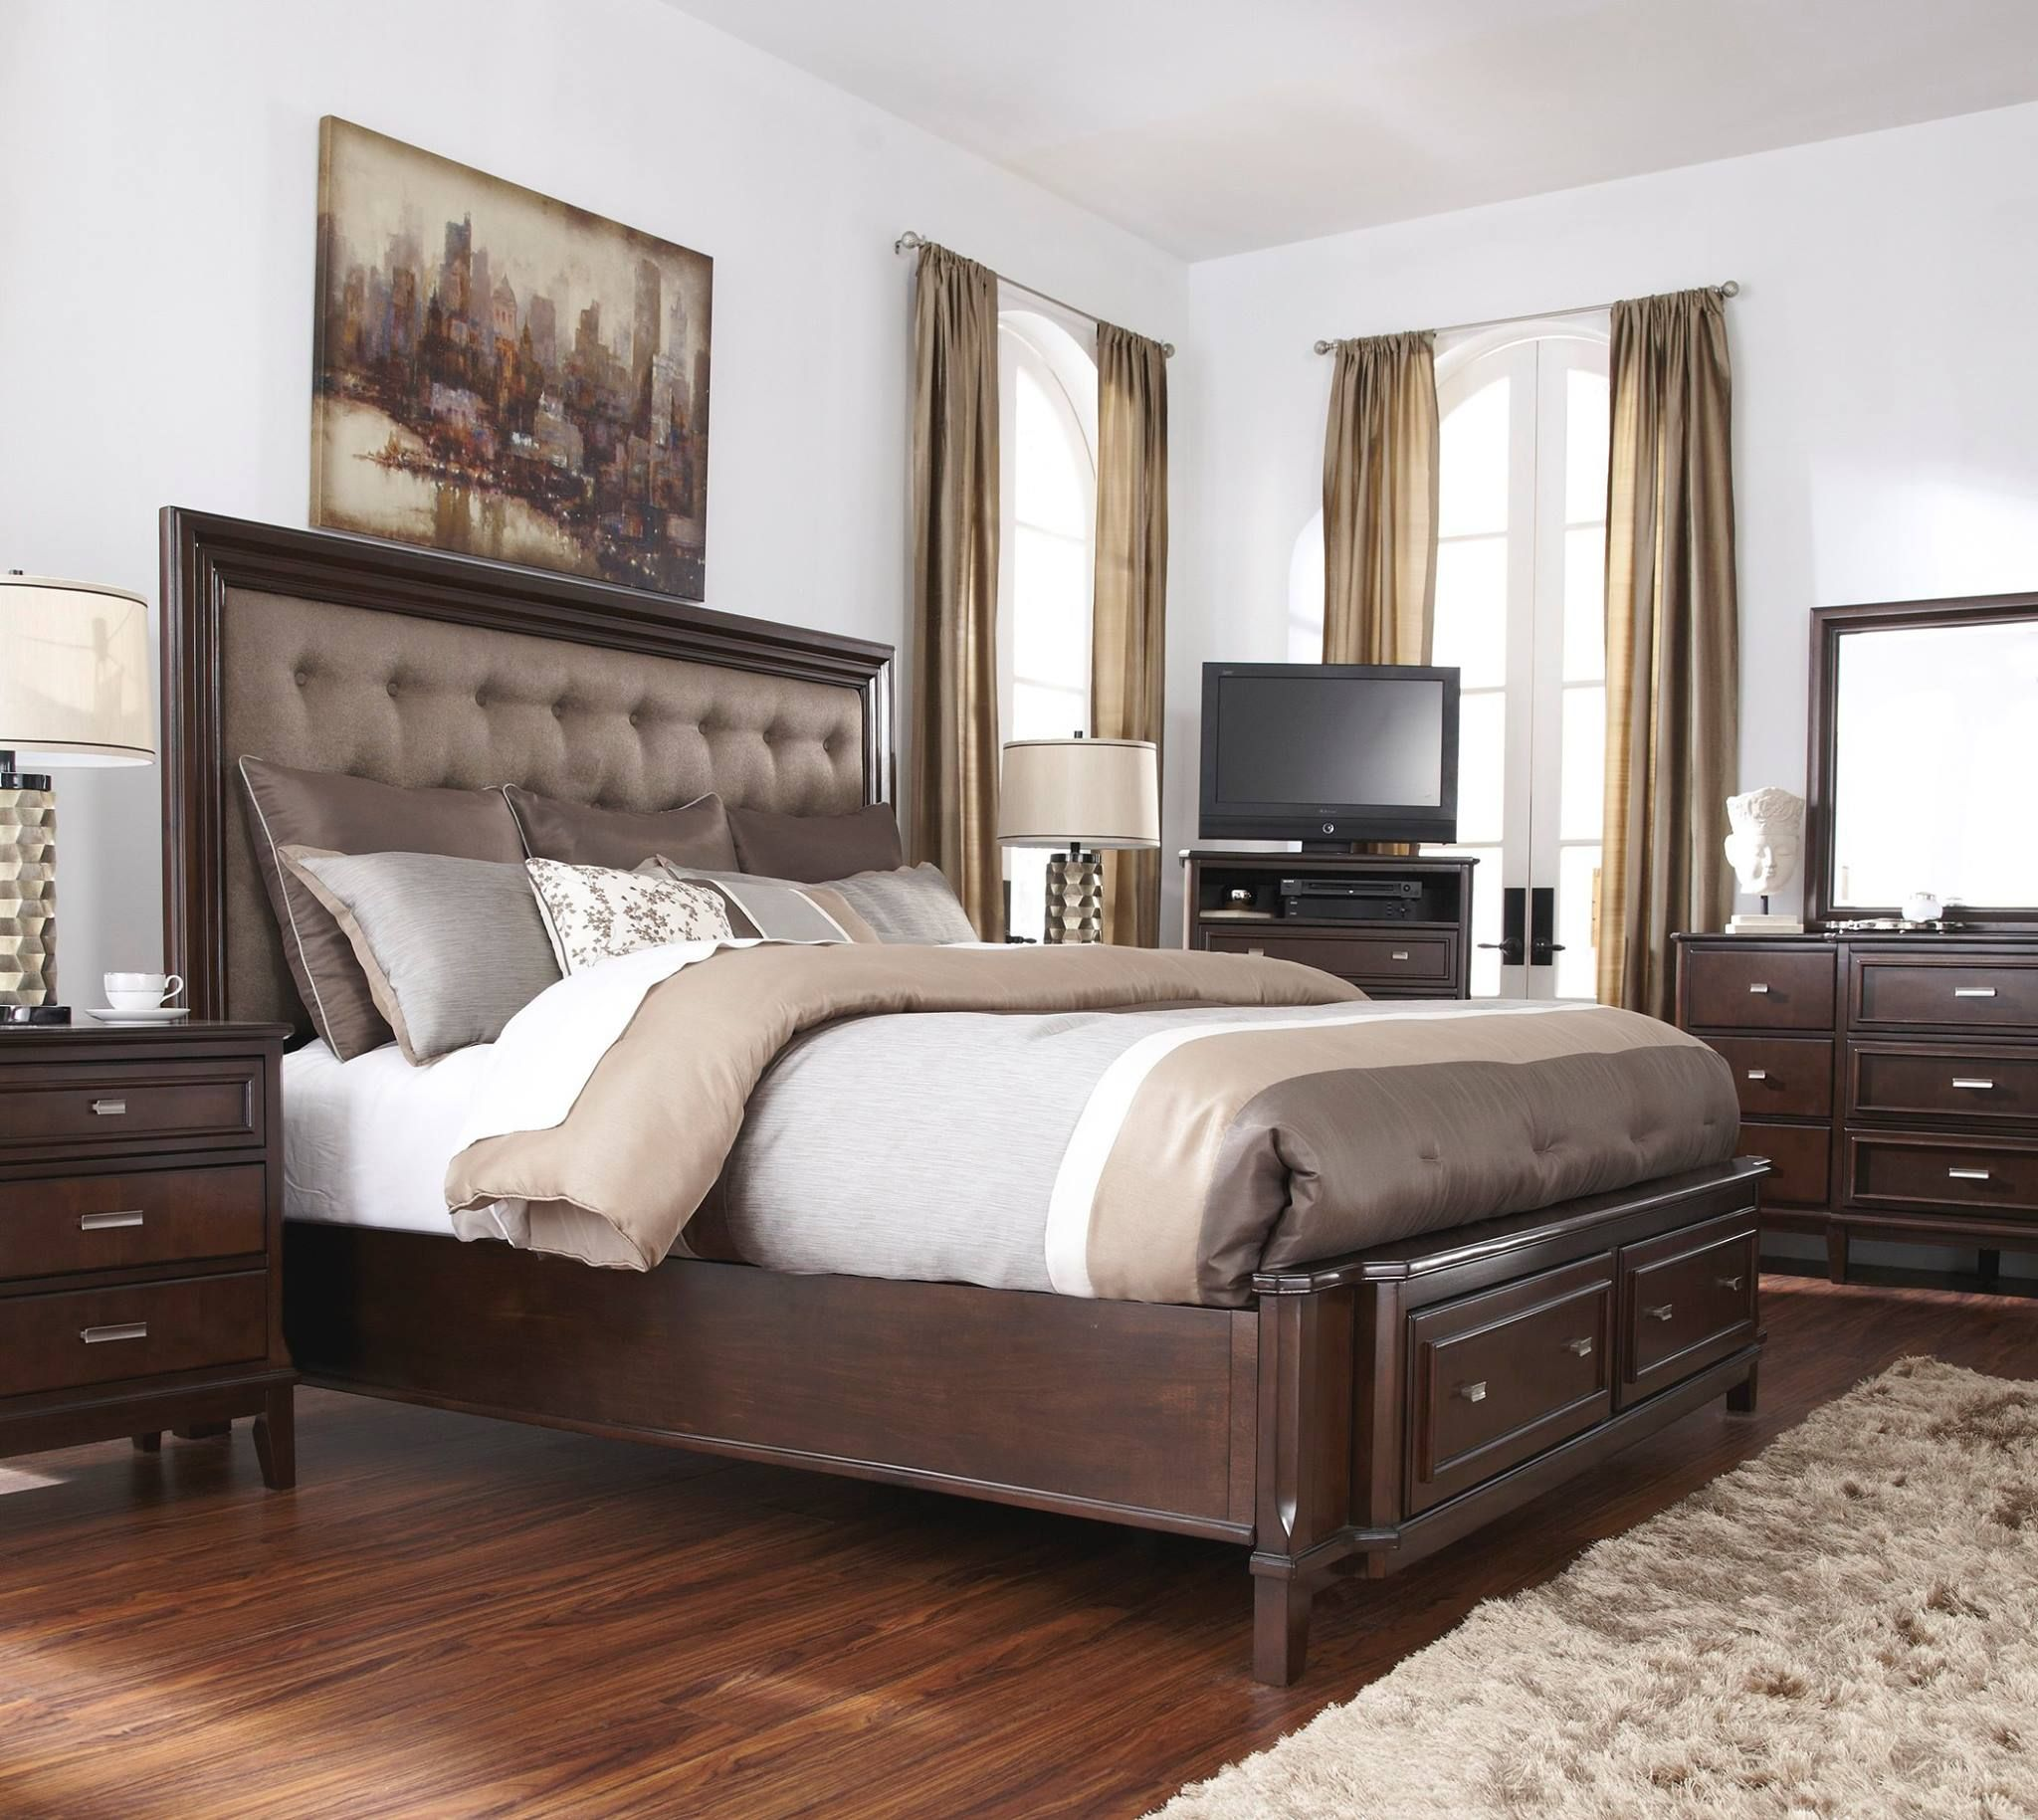 inspirations king leather in your metal fresh ashley padded storage bed with furniture tufted gender headboard neutral unique master for bedroom upholstered headboards